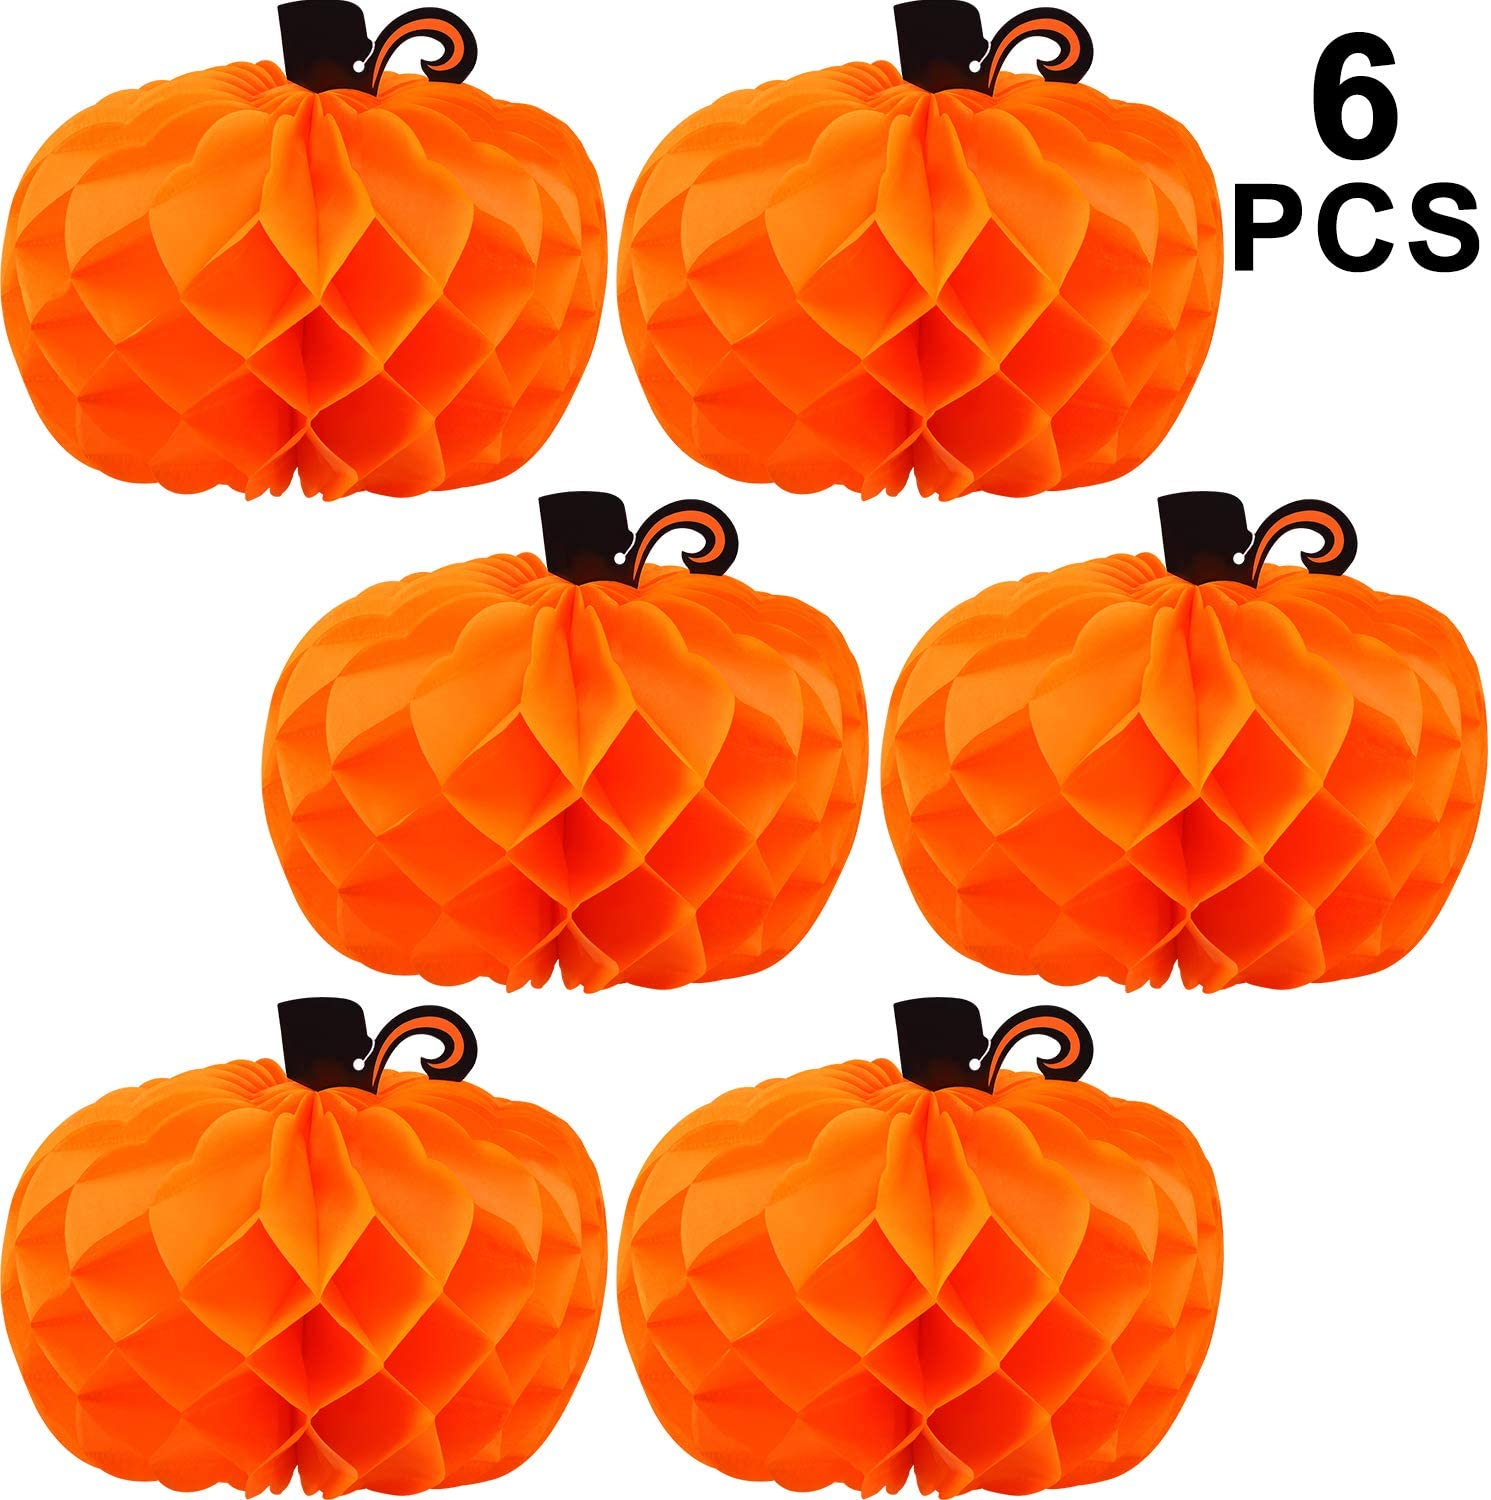 WILLBOND 6 Pieces Halloween Decor 3D Paper Pumpkin Honeycomb Decorations with Punch for Halloween Thanksgiving Party Table Centerpieces Decoration (Black Branch)